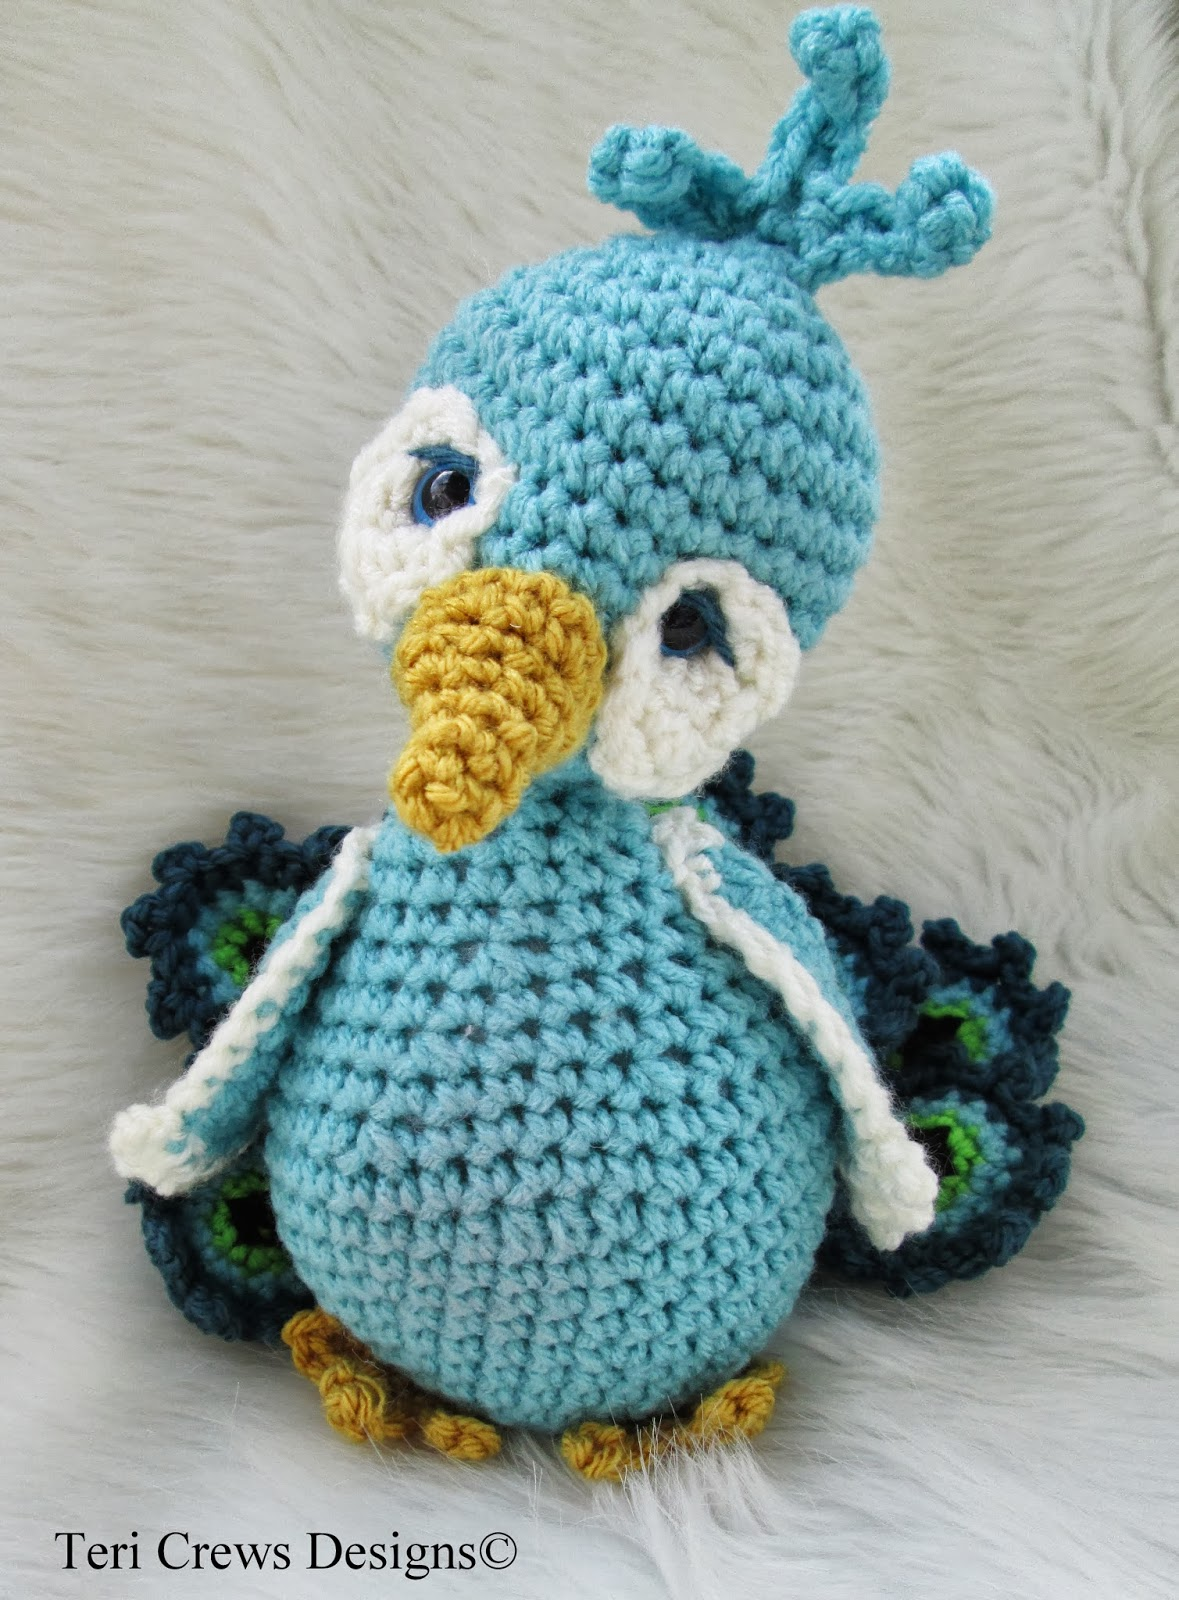 Teris Blog: New Simply Cute Peacock Crochet Pattern